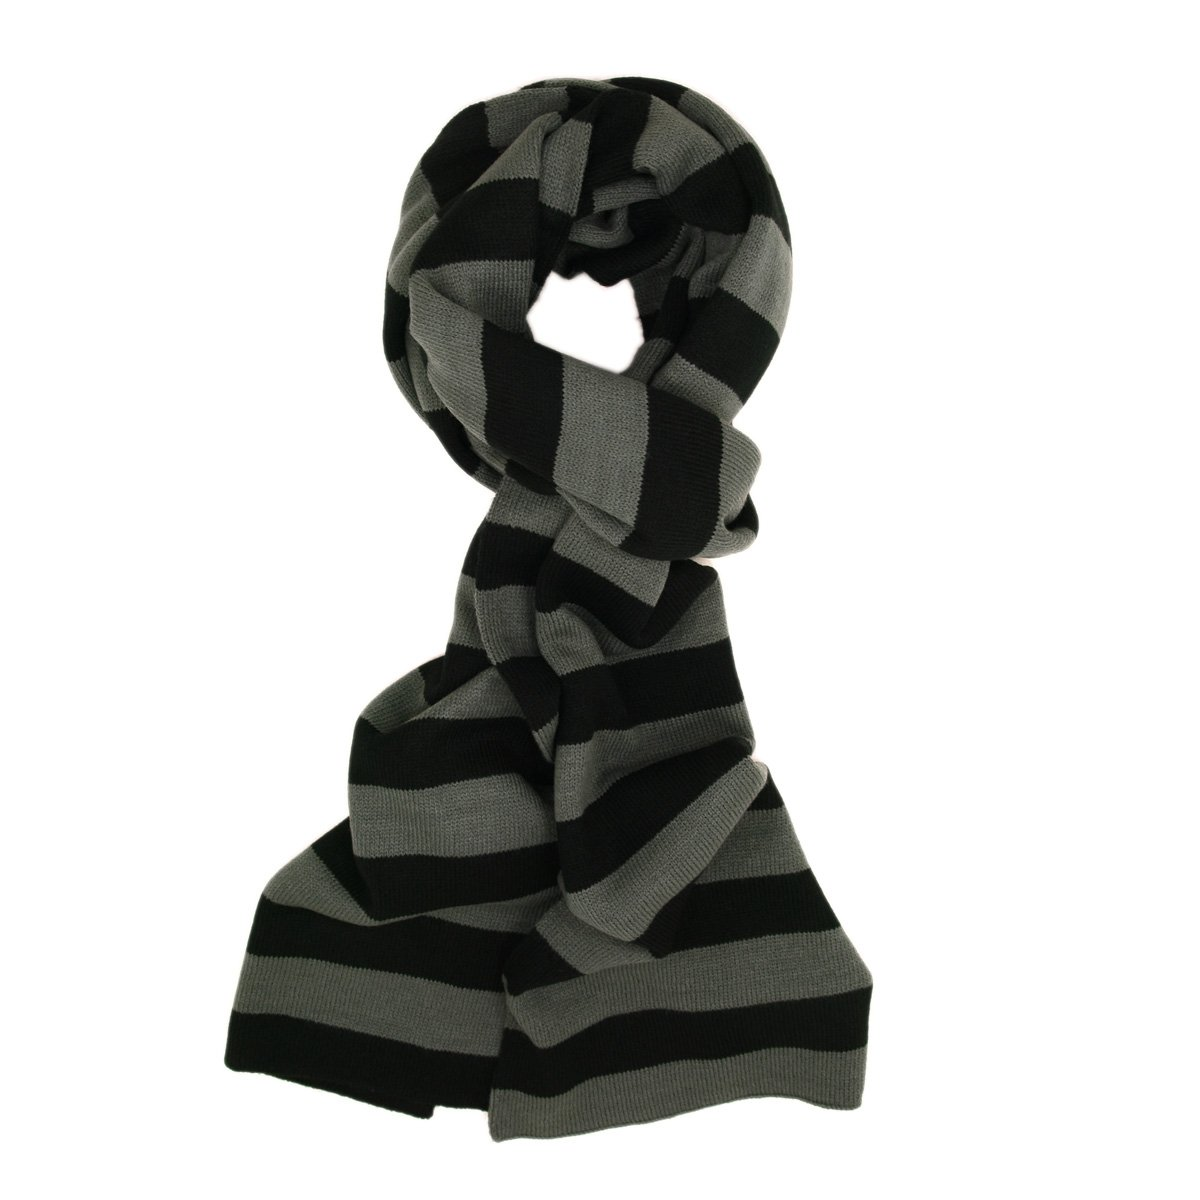 TrendsBlue Premium Soft Knit Striped Scarf - Different Colors Available Navy SC85135A-NAV